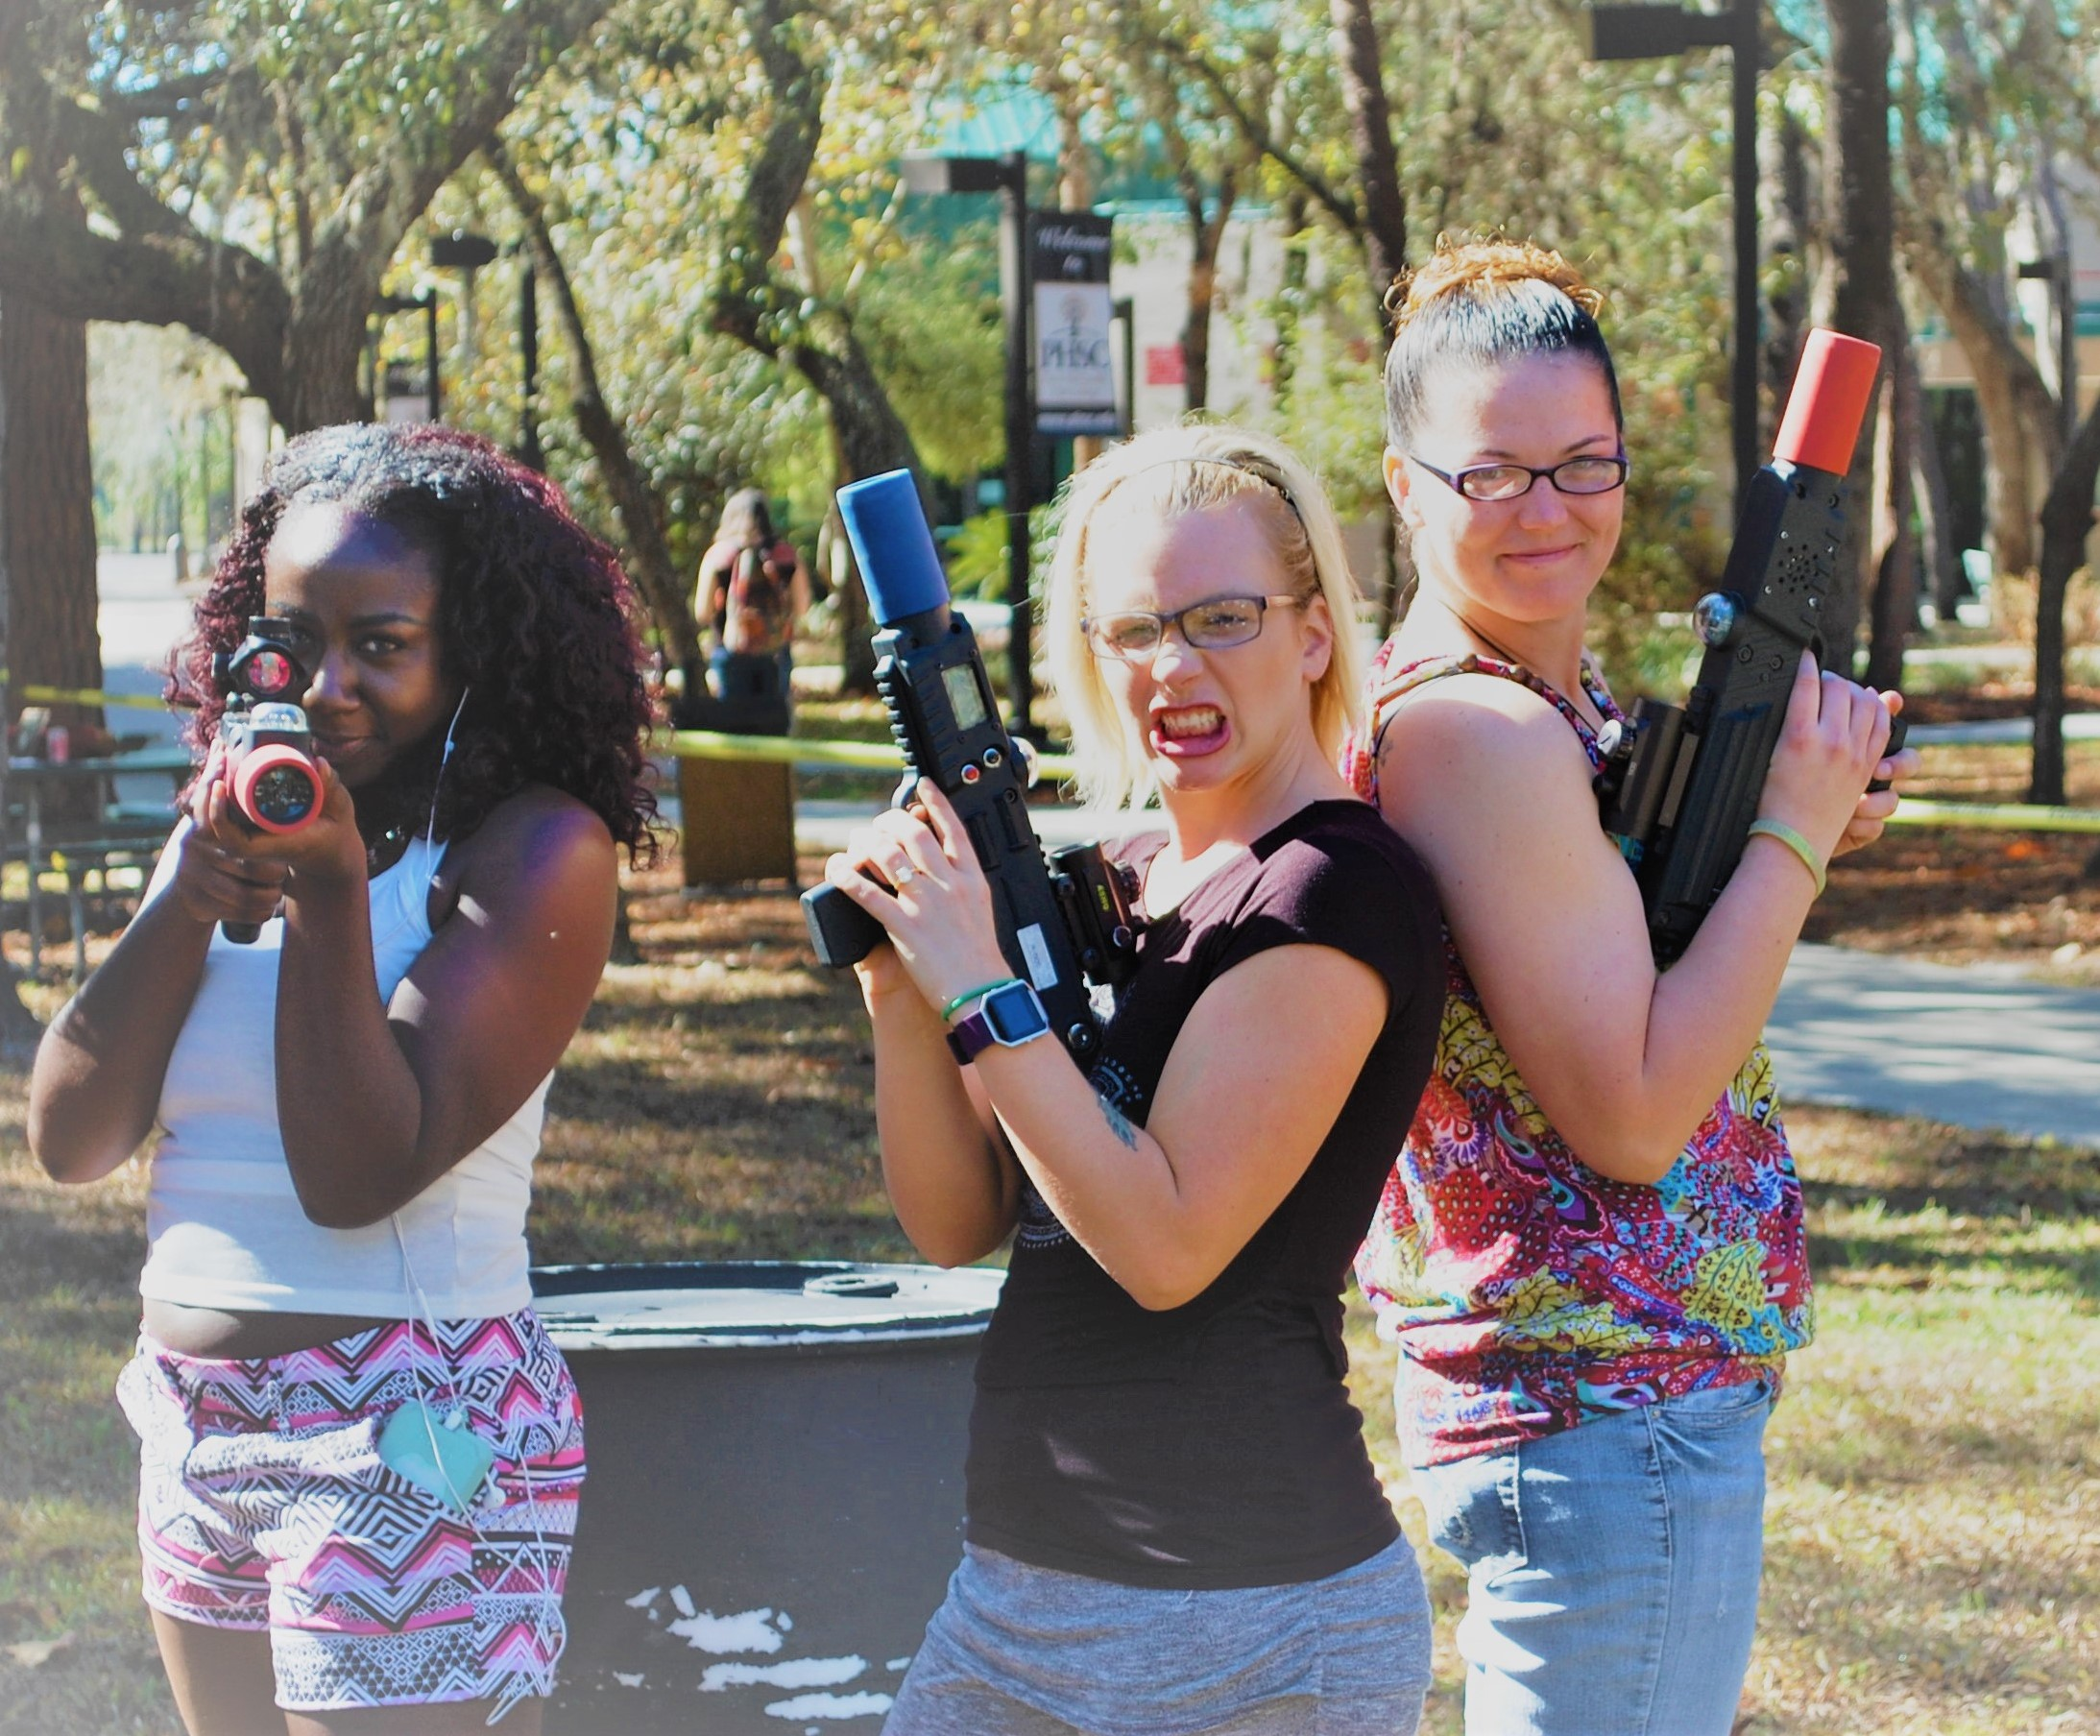 College Events in Florida - Stealth Mobile Laser Tag (45)